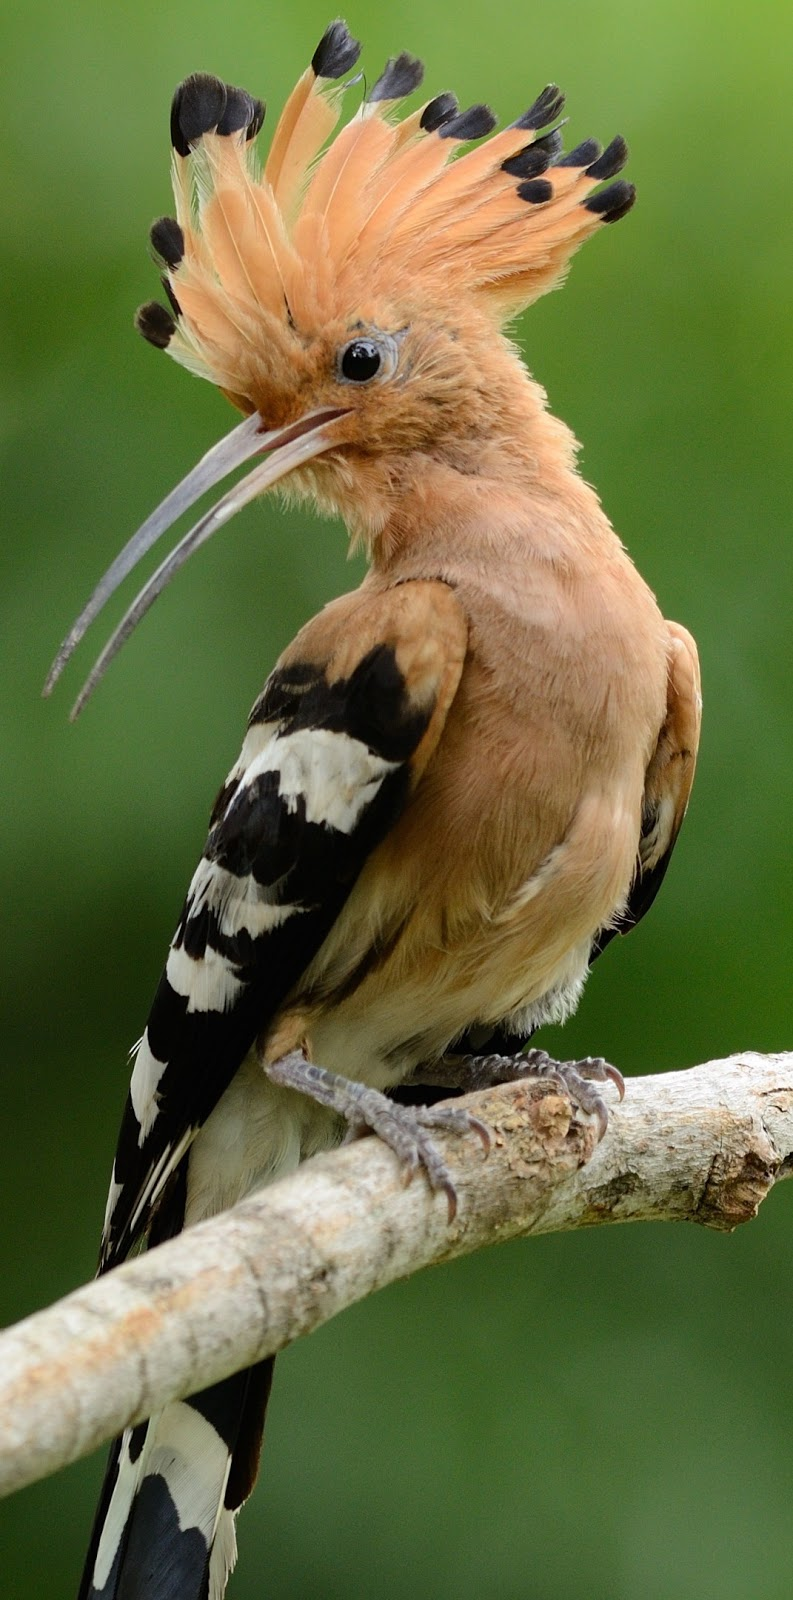 Beautiful hoopoe bird.